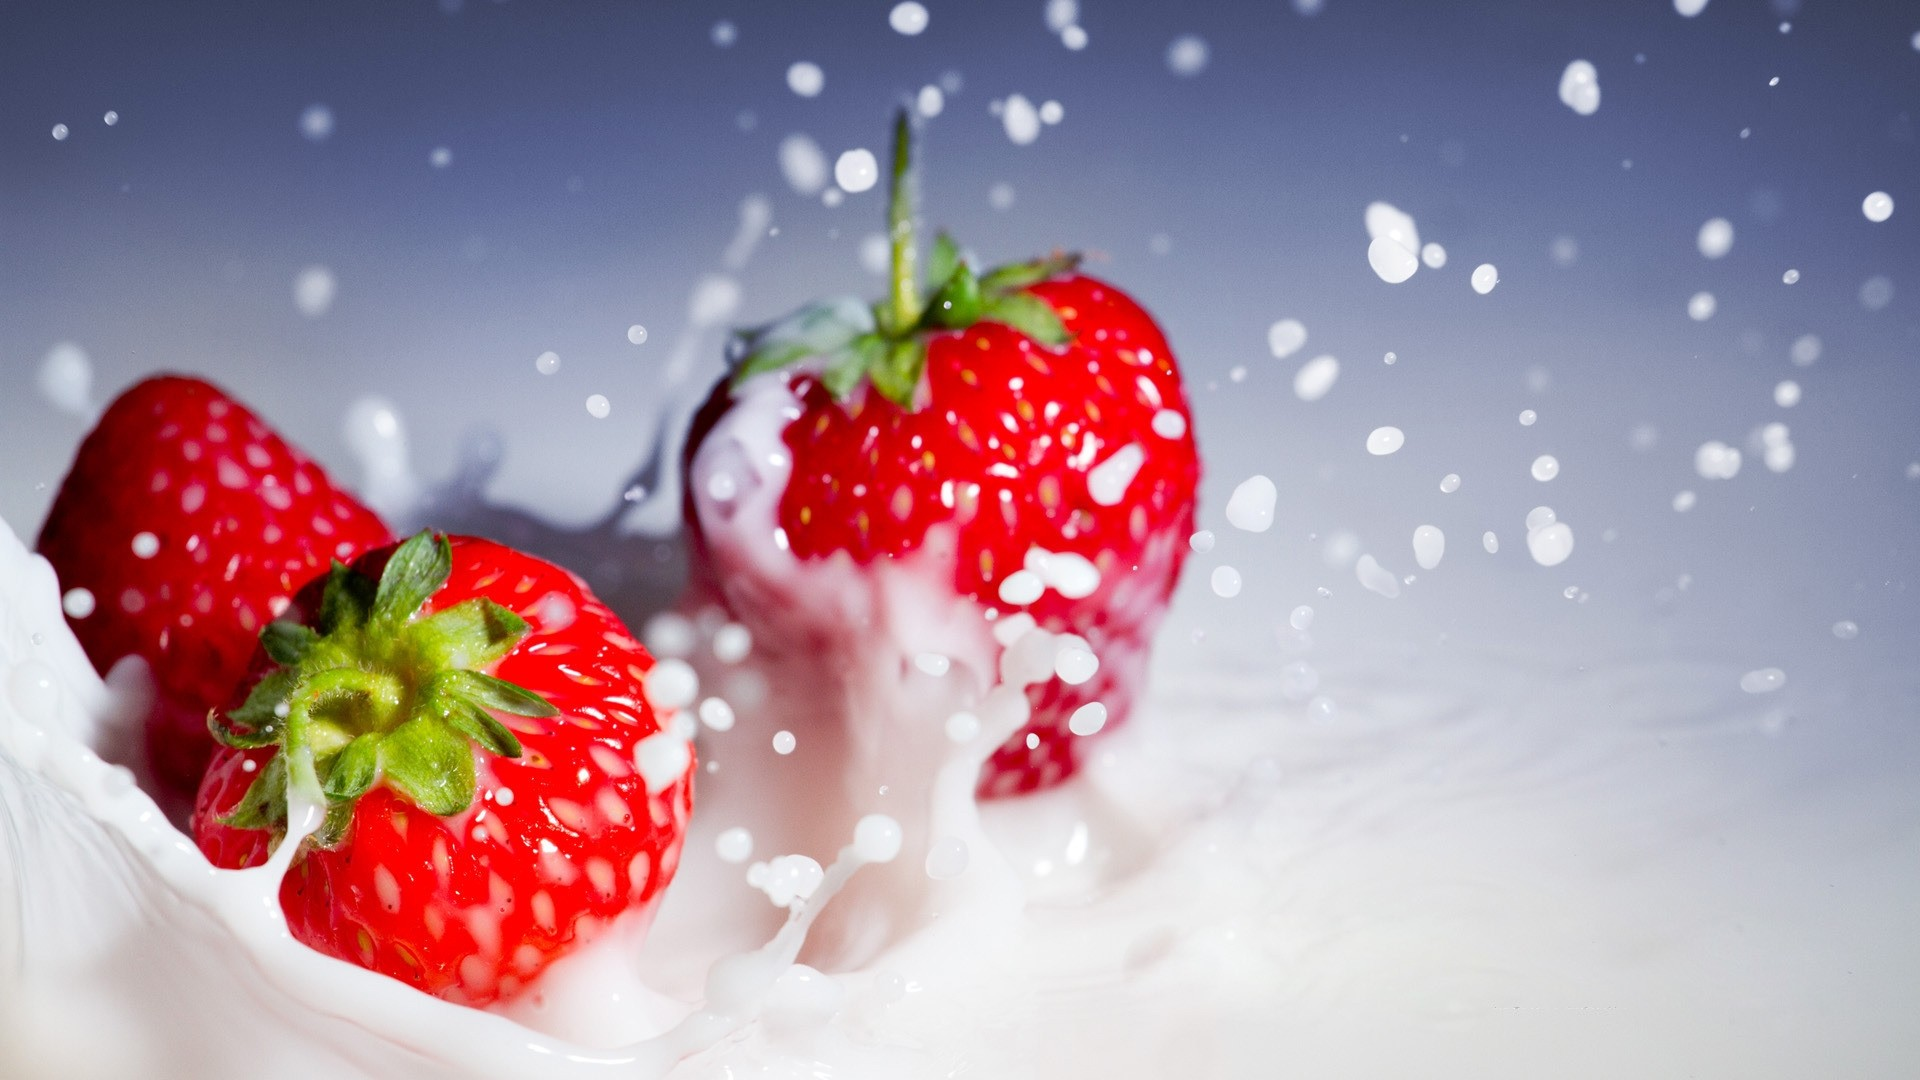 21 Strawberry Wallpapers Wallpaperboat